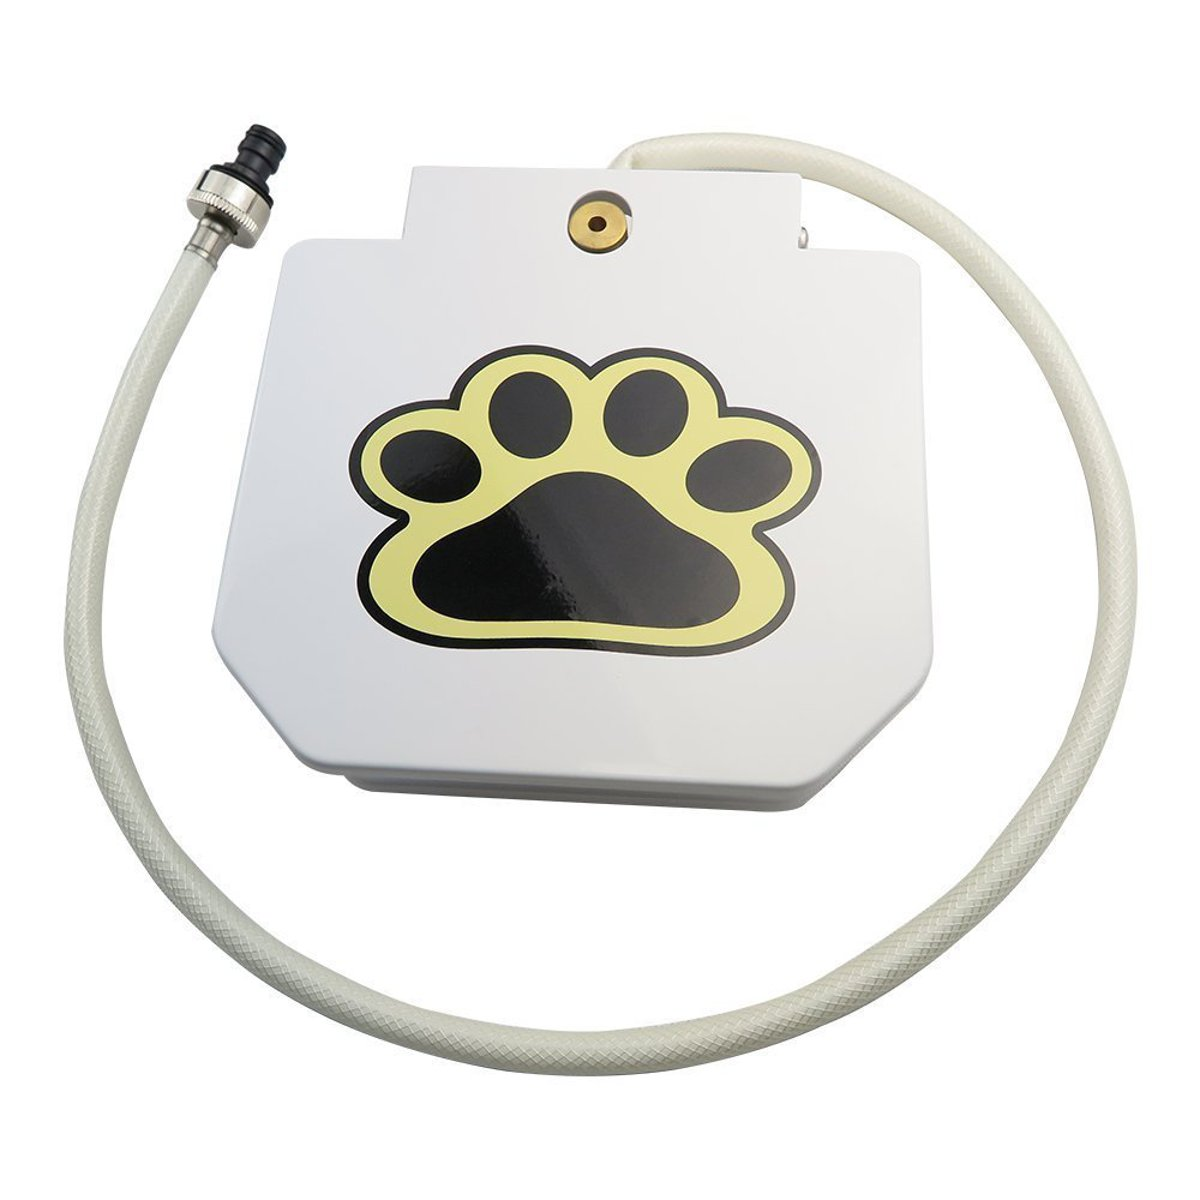 Outdoor Dog Water Fountain - Auto Pet Water Dispenser Sytem